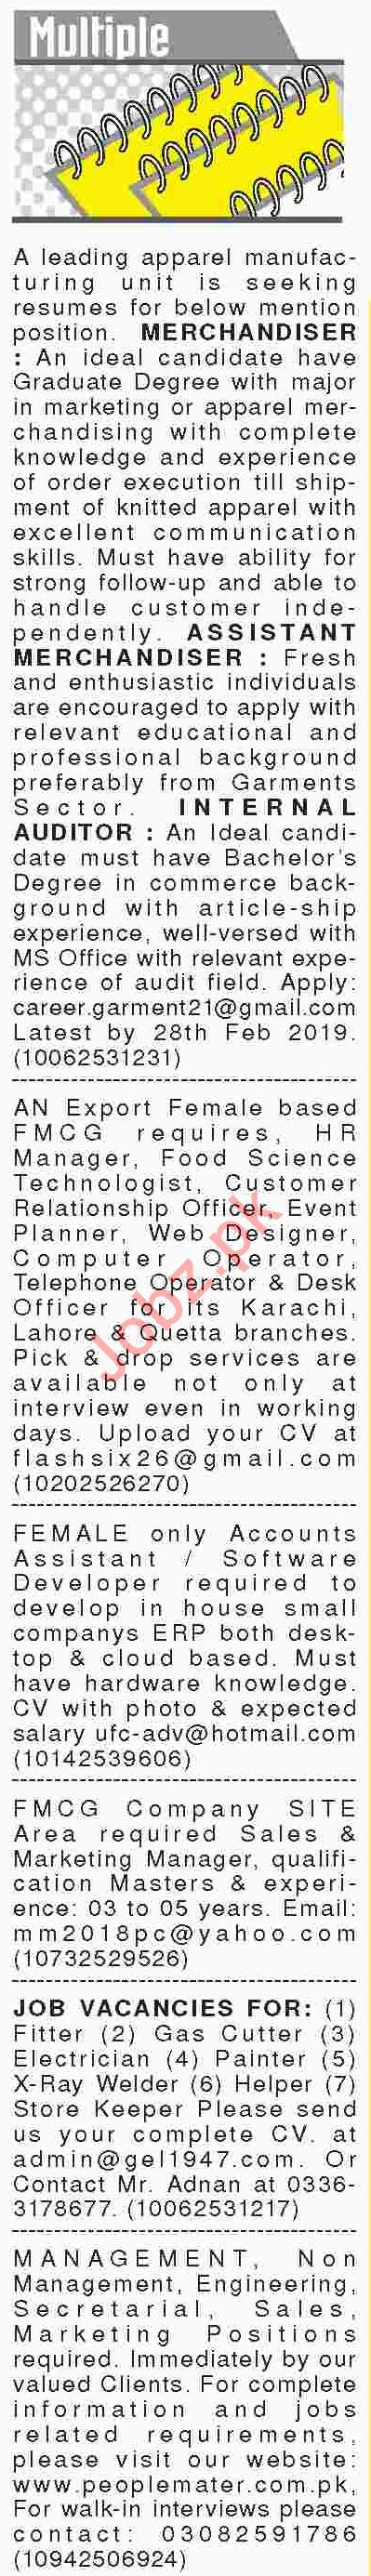 Dawn Sunday Classified Ads 24th Feb 2019 for Multiple Staff